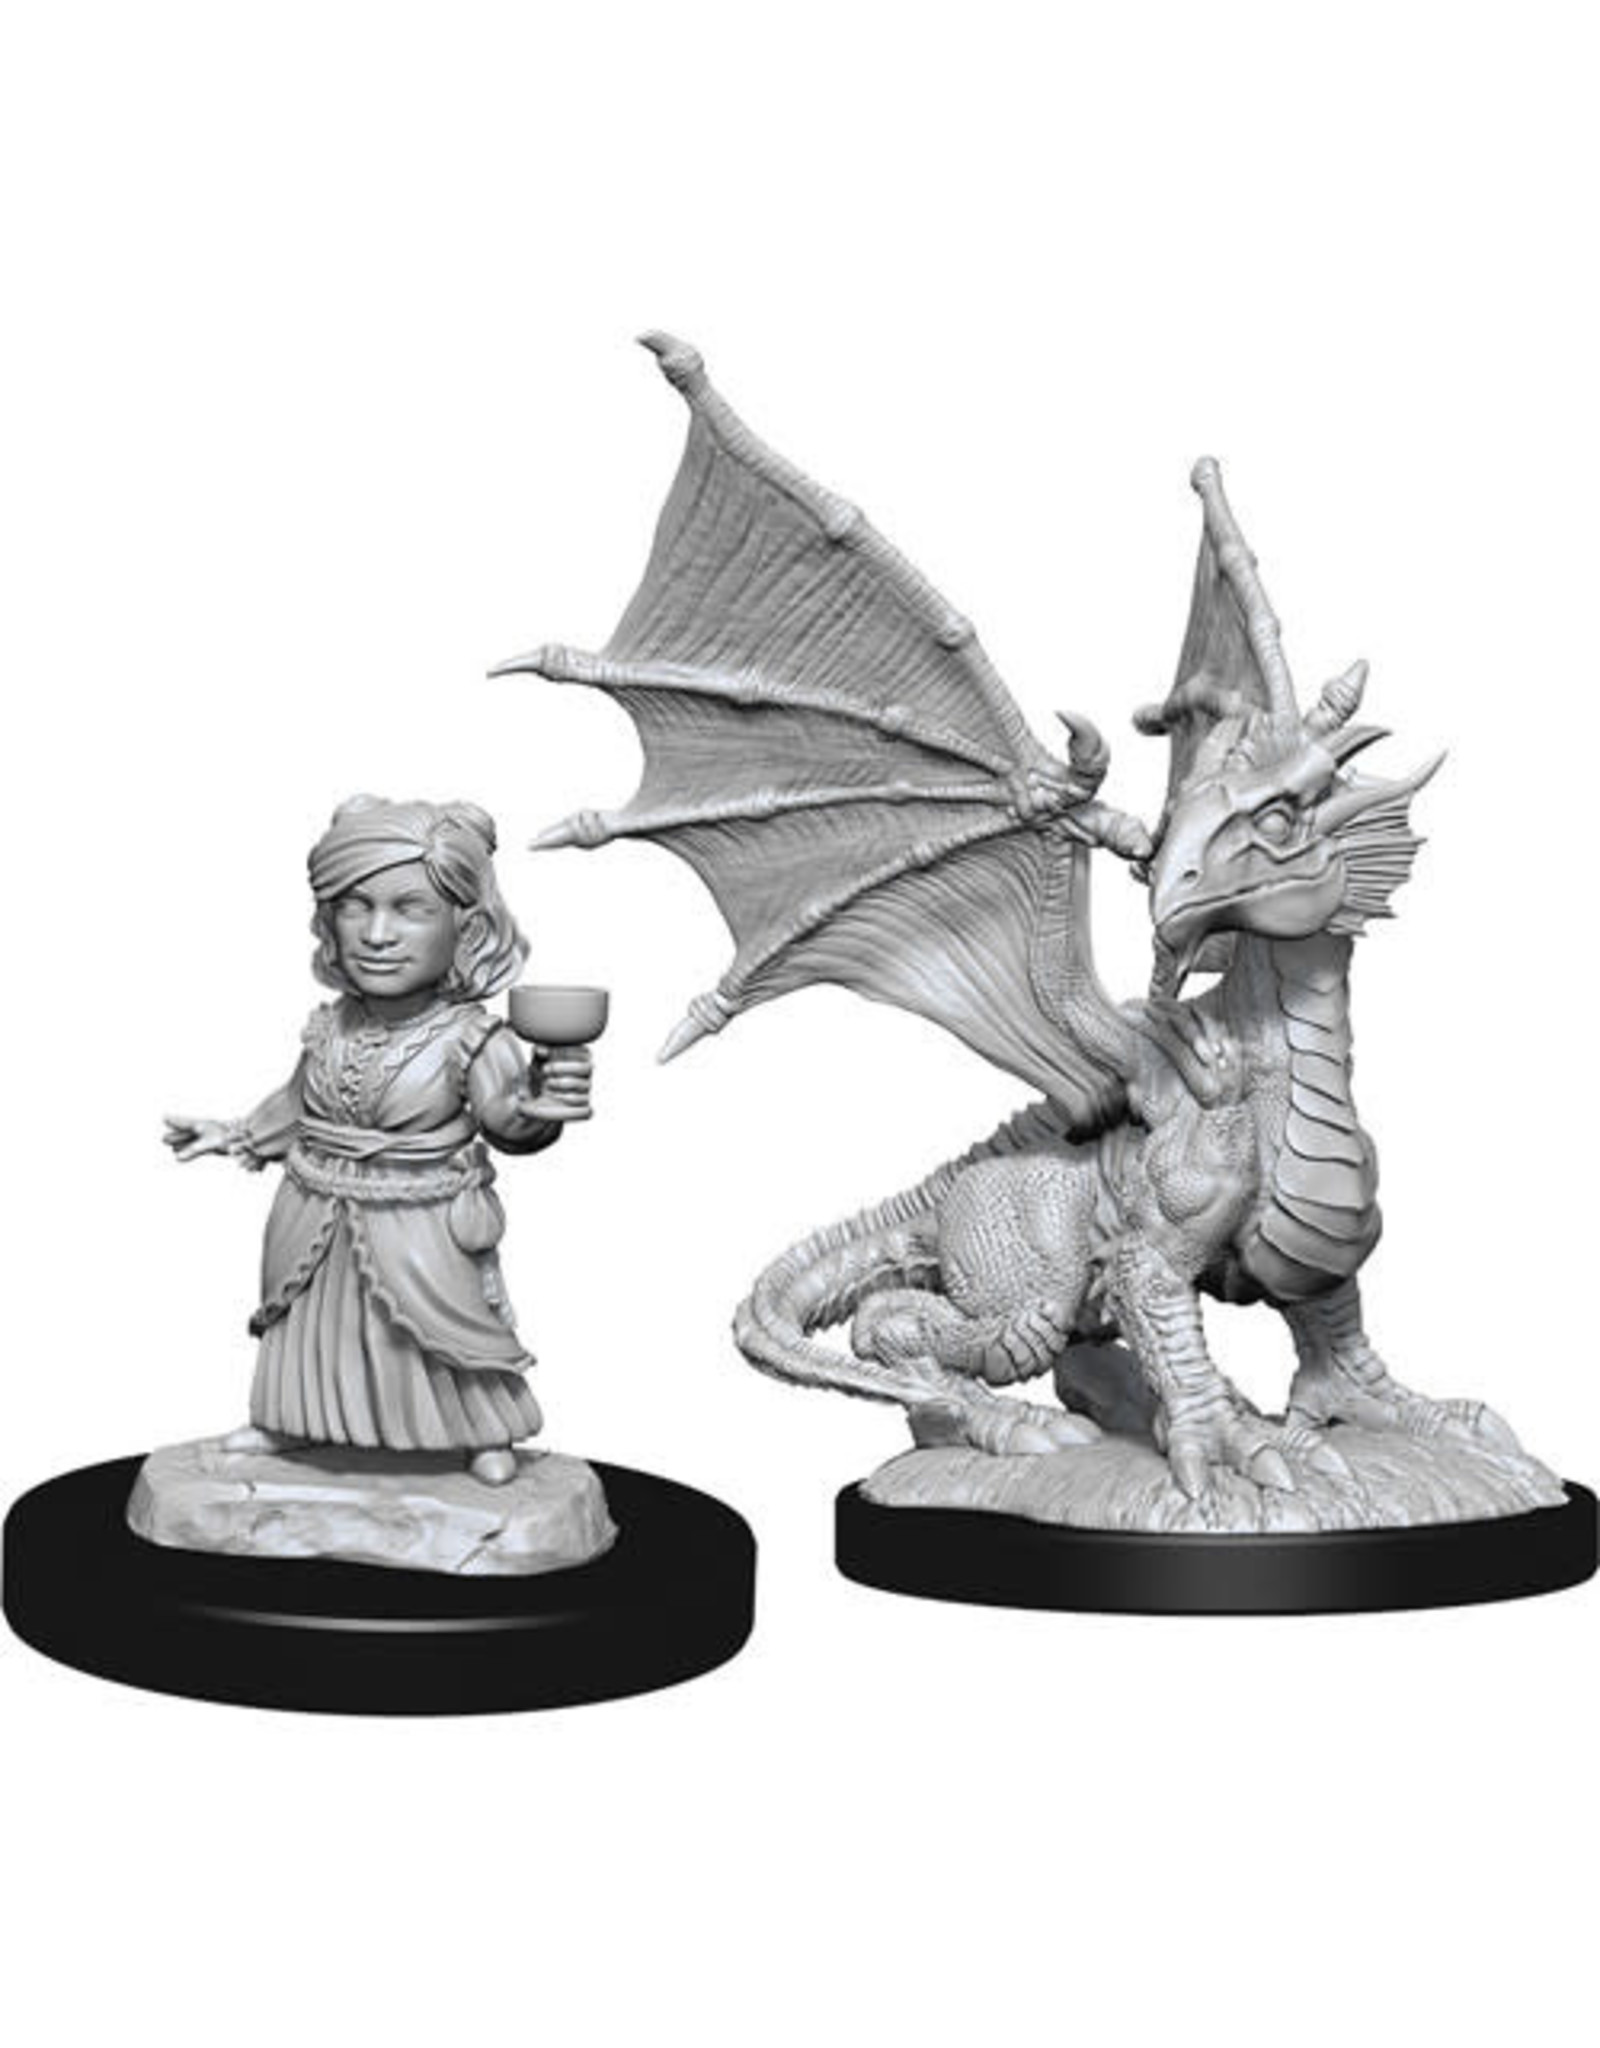 D&D Unpainted Minis: Silver Dragon Wyrmling & Halfling Dragon Friend (Wave 13)